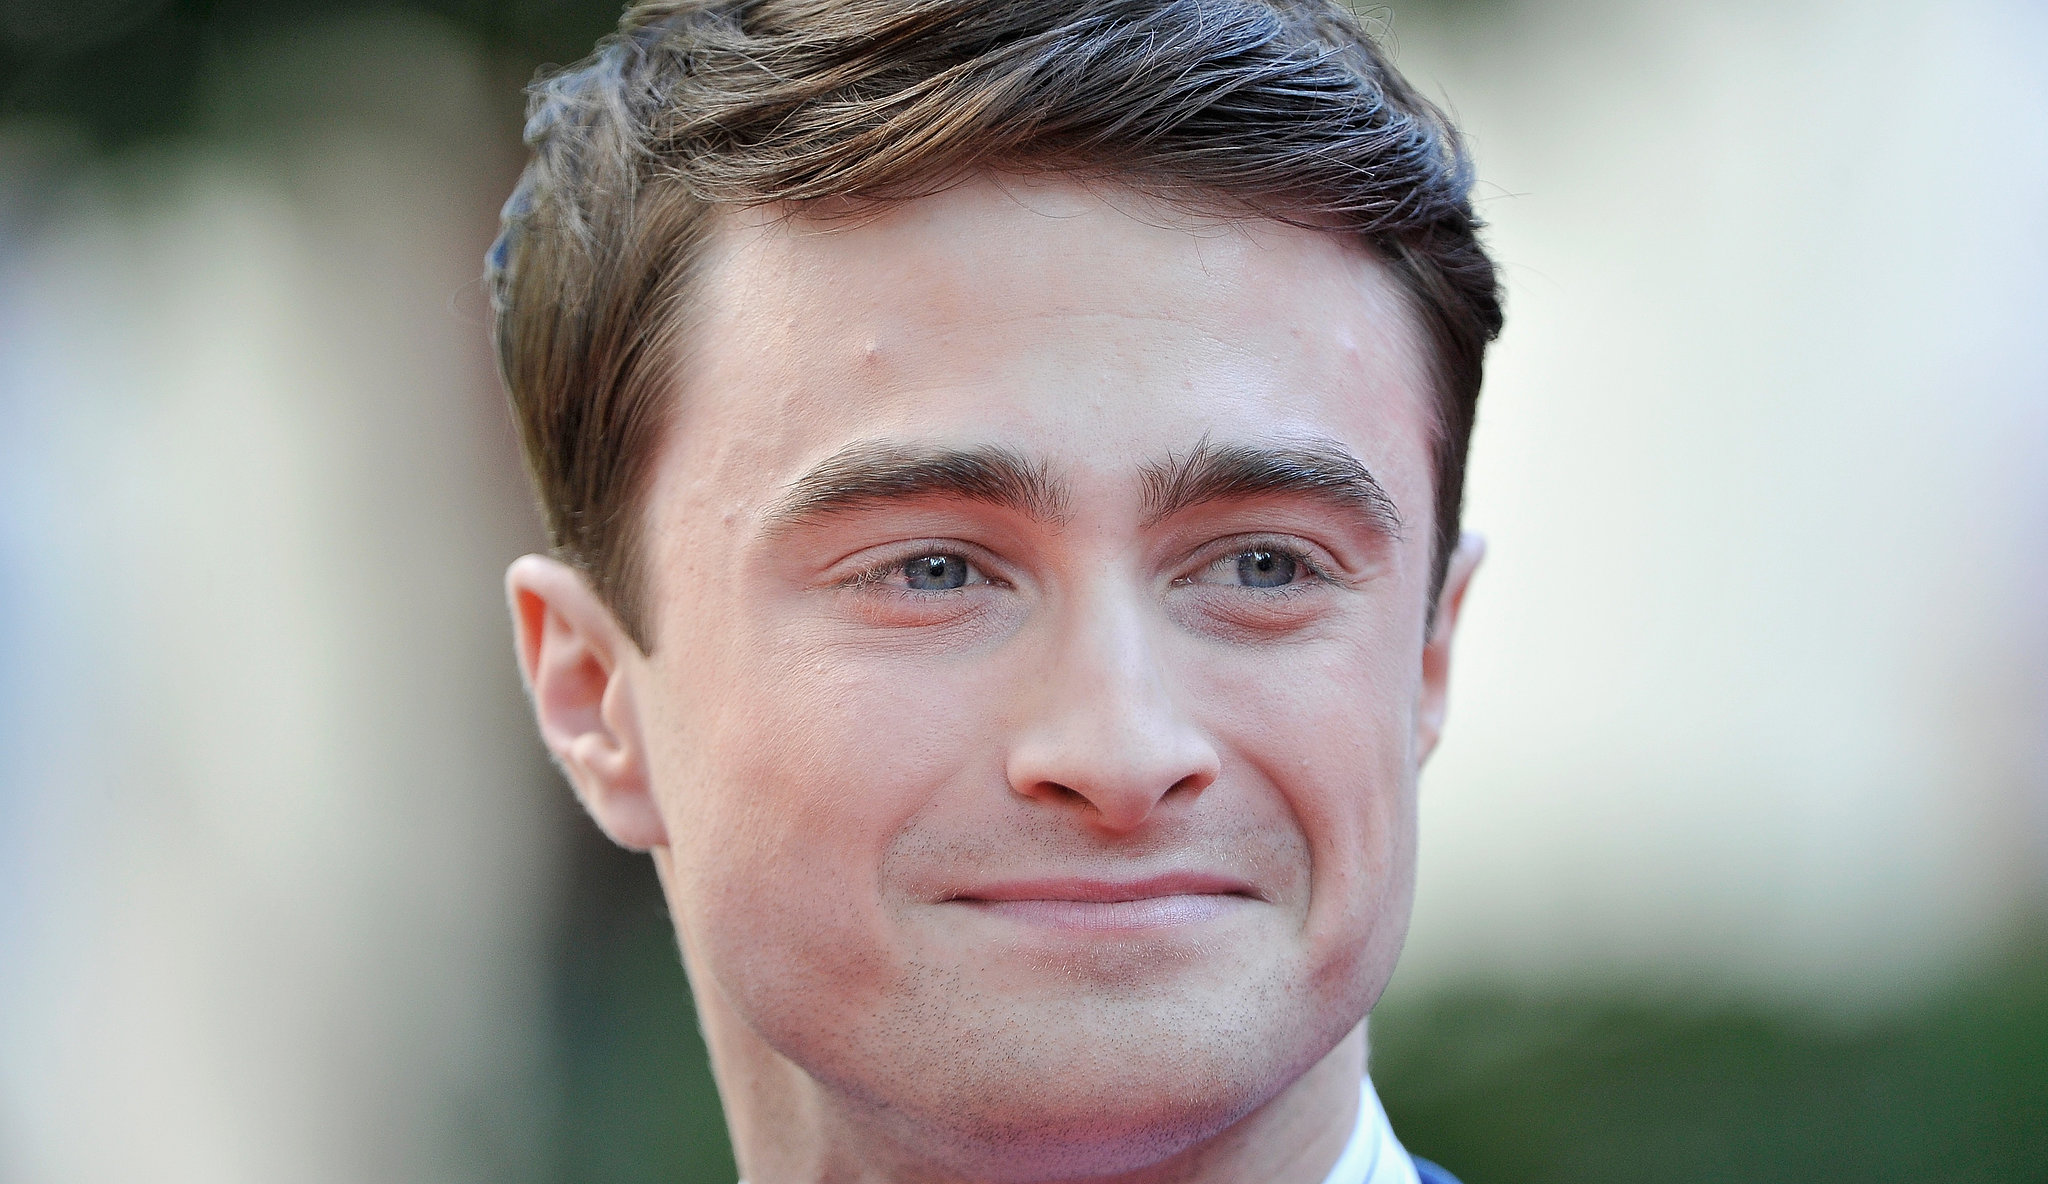 Daniel Radcliffe attended the Kill Your Darlings premiere at the Venice Film Festival.